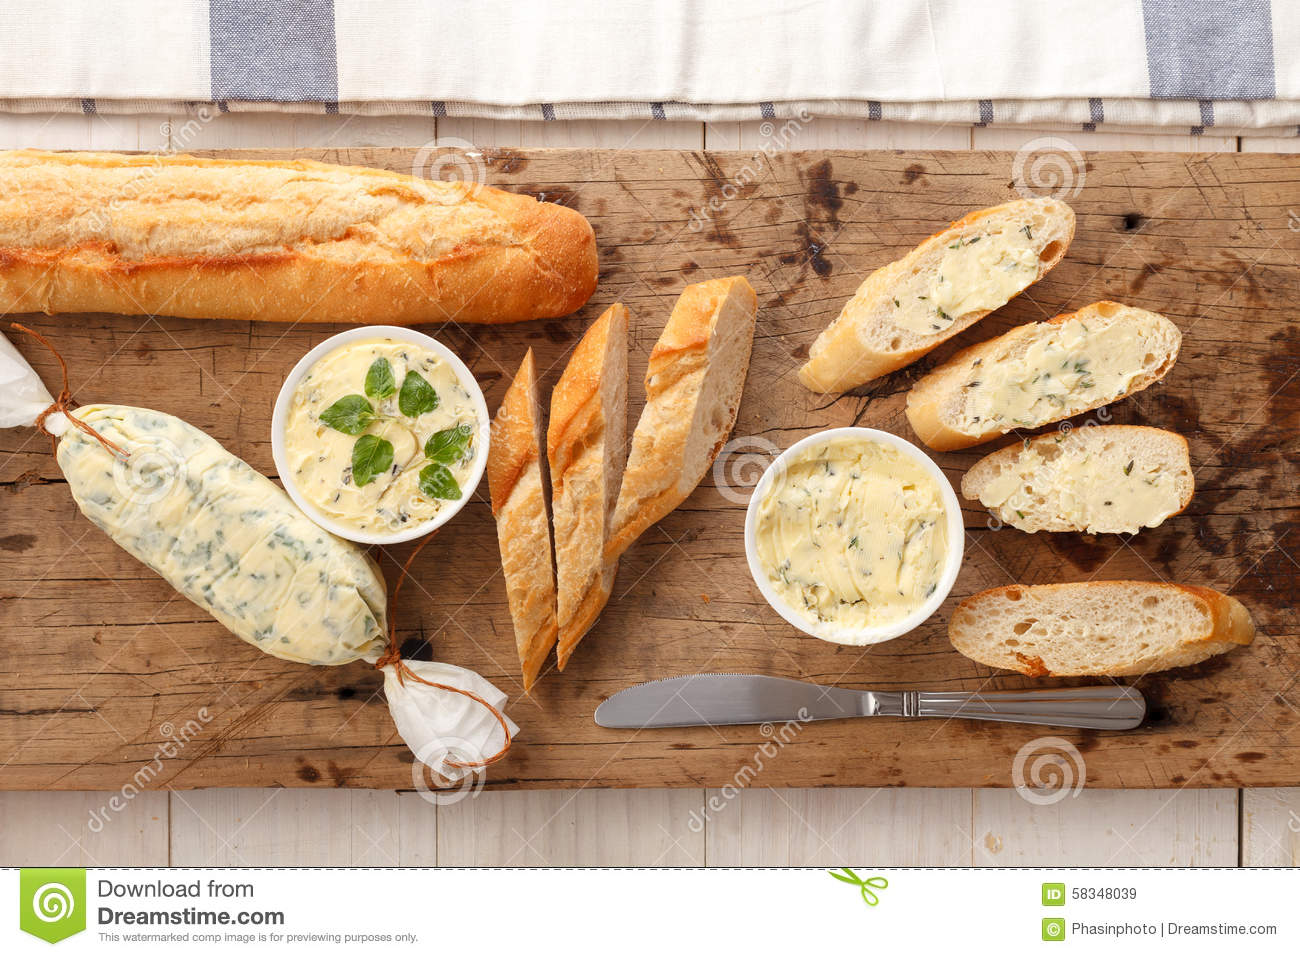 ... bread compound butter herb baguette thyme rosemary coriander oregano